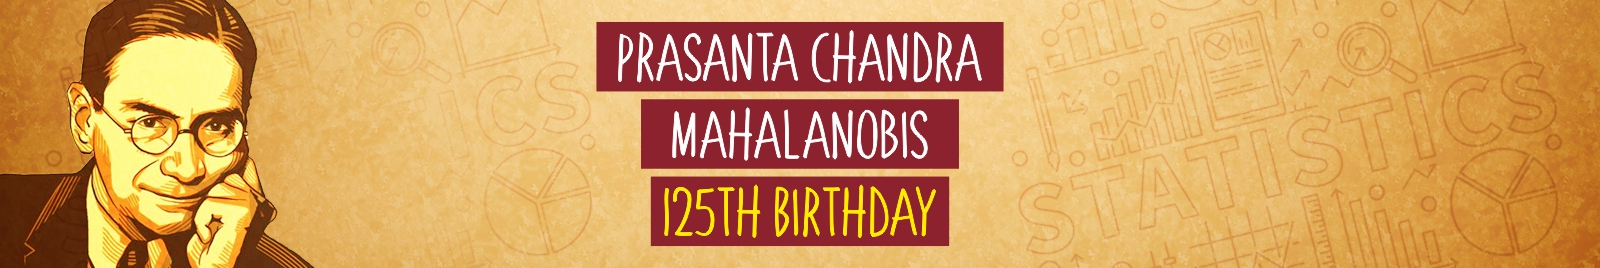 Prasanta Chandra Mahalanobis' 125th Birthday